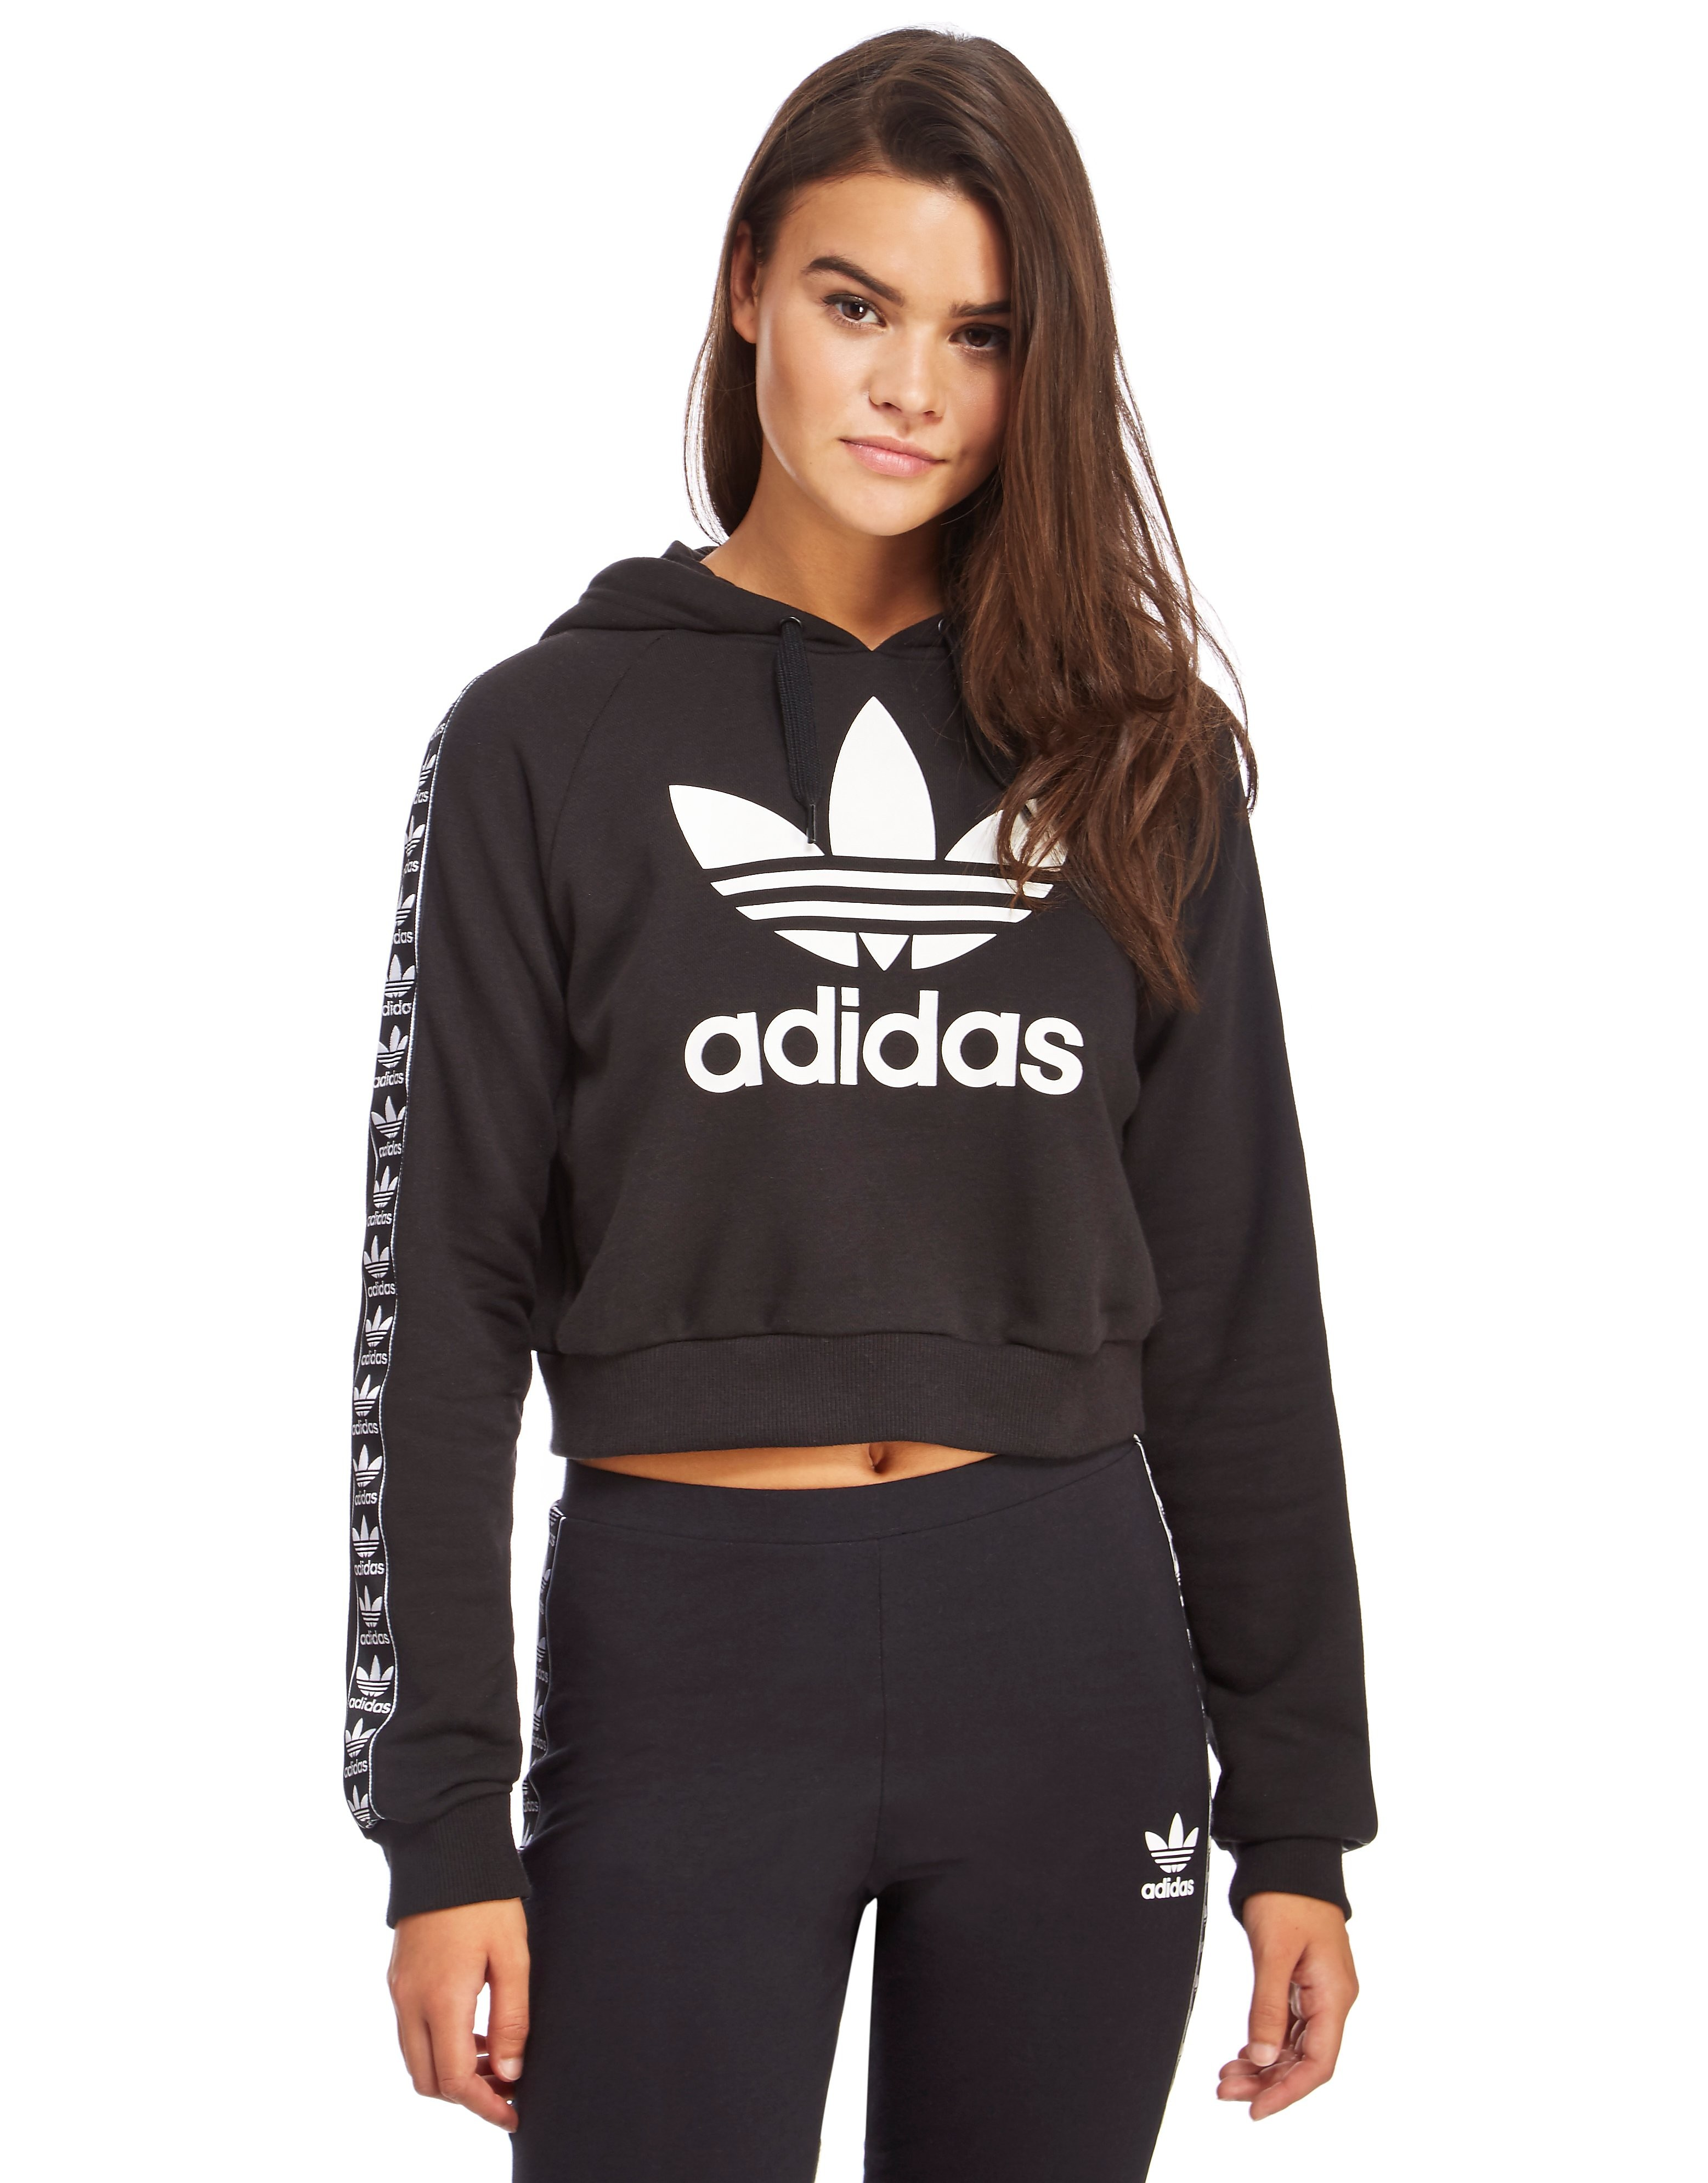 adidas Originals Tape Crop Overhead Hoody